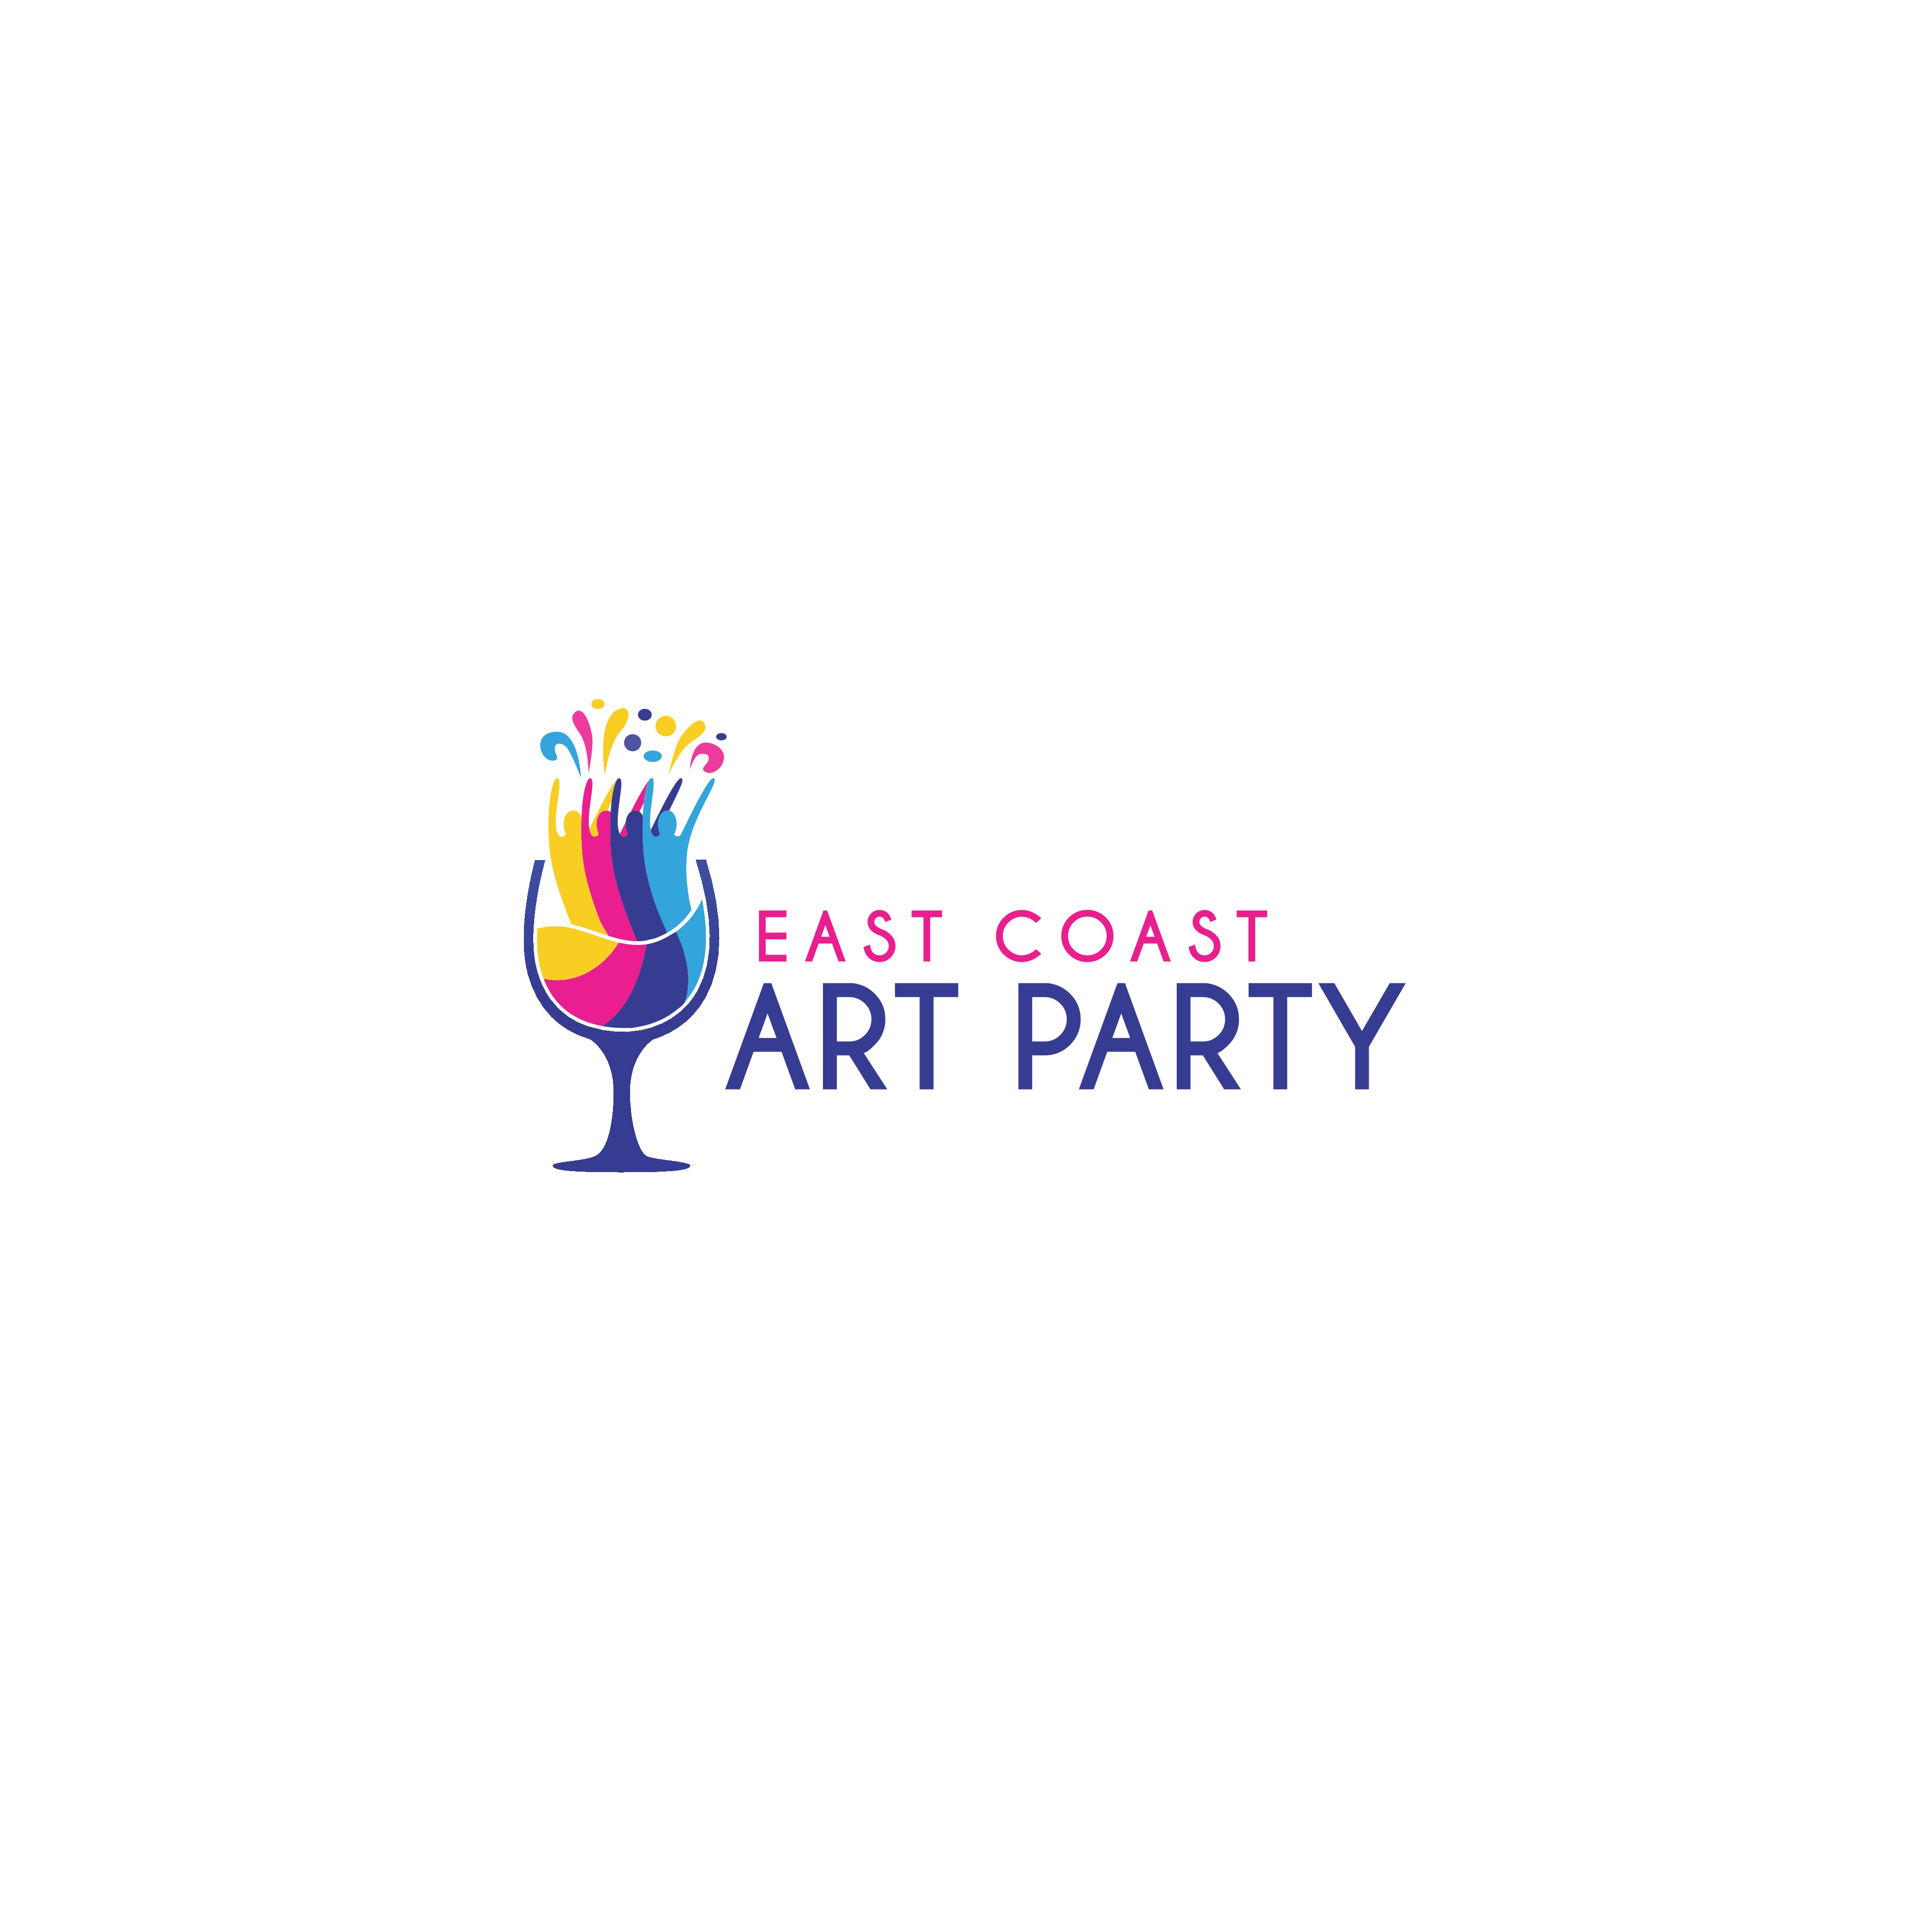 Logo for 'East Coast Art Party' - Represents Art, drinking, paint, fun!